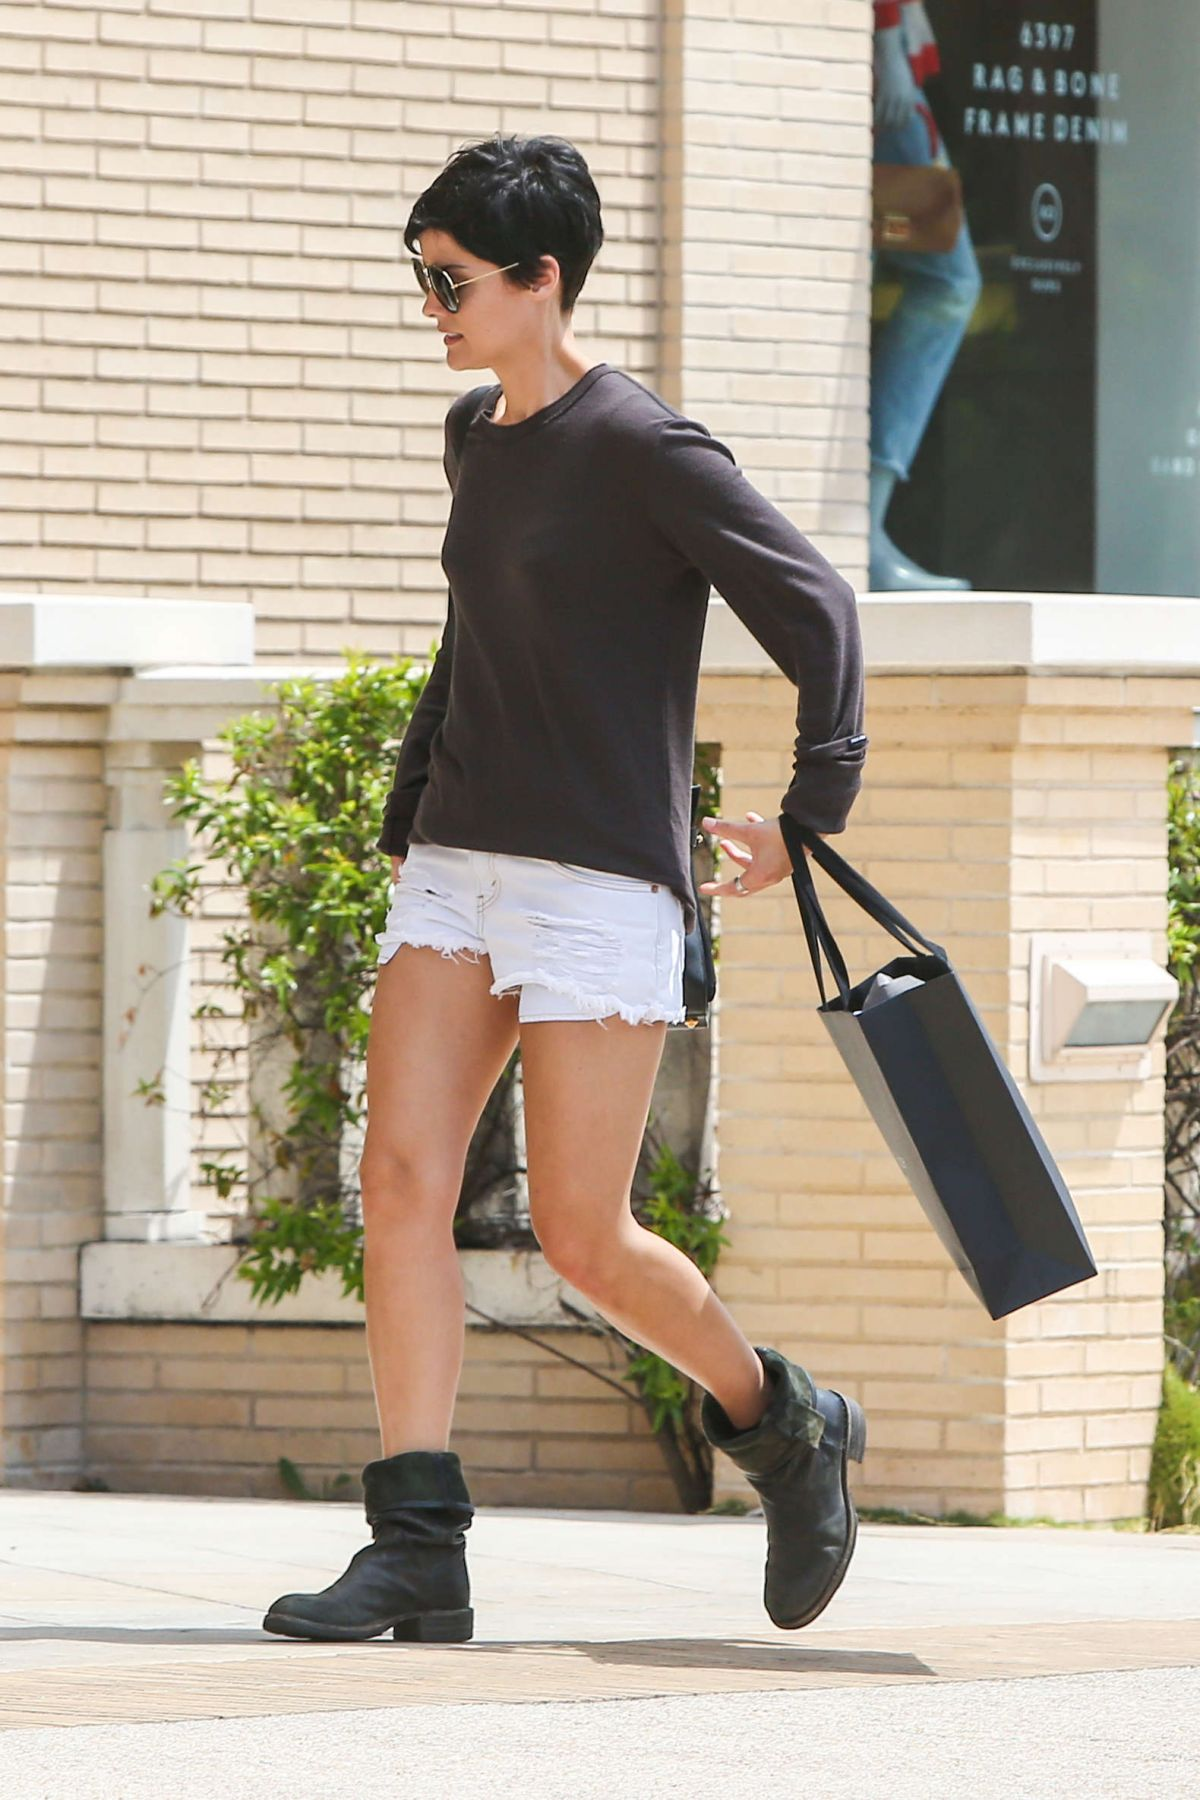 JAIMIE ALXANDER in Shorts Out and About in Los Angeles